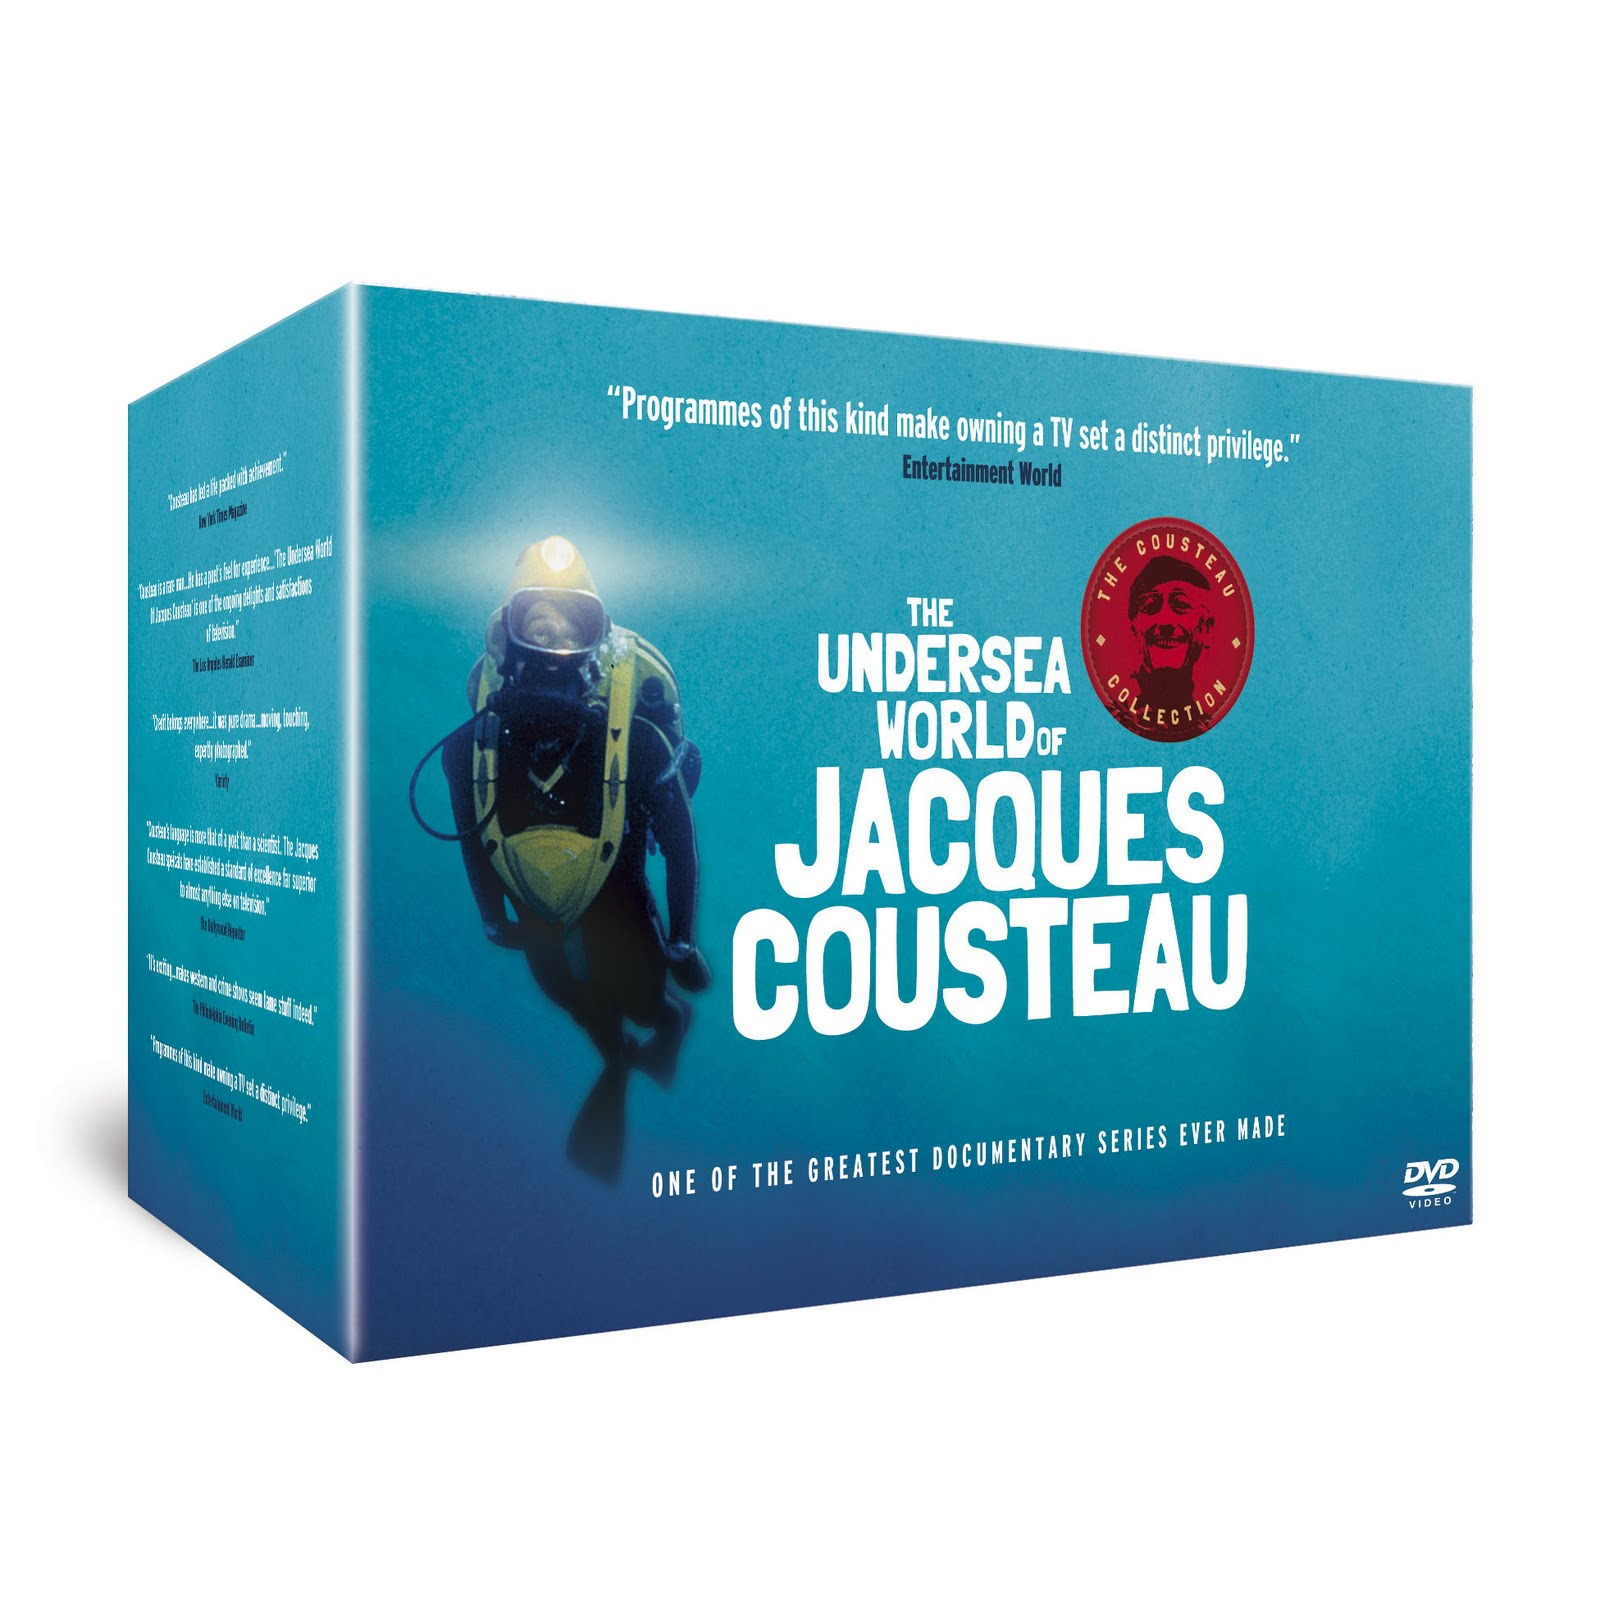 The Undersea World of Jacques Cousteau movie